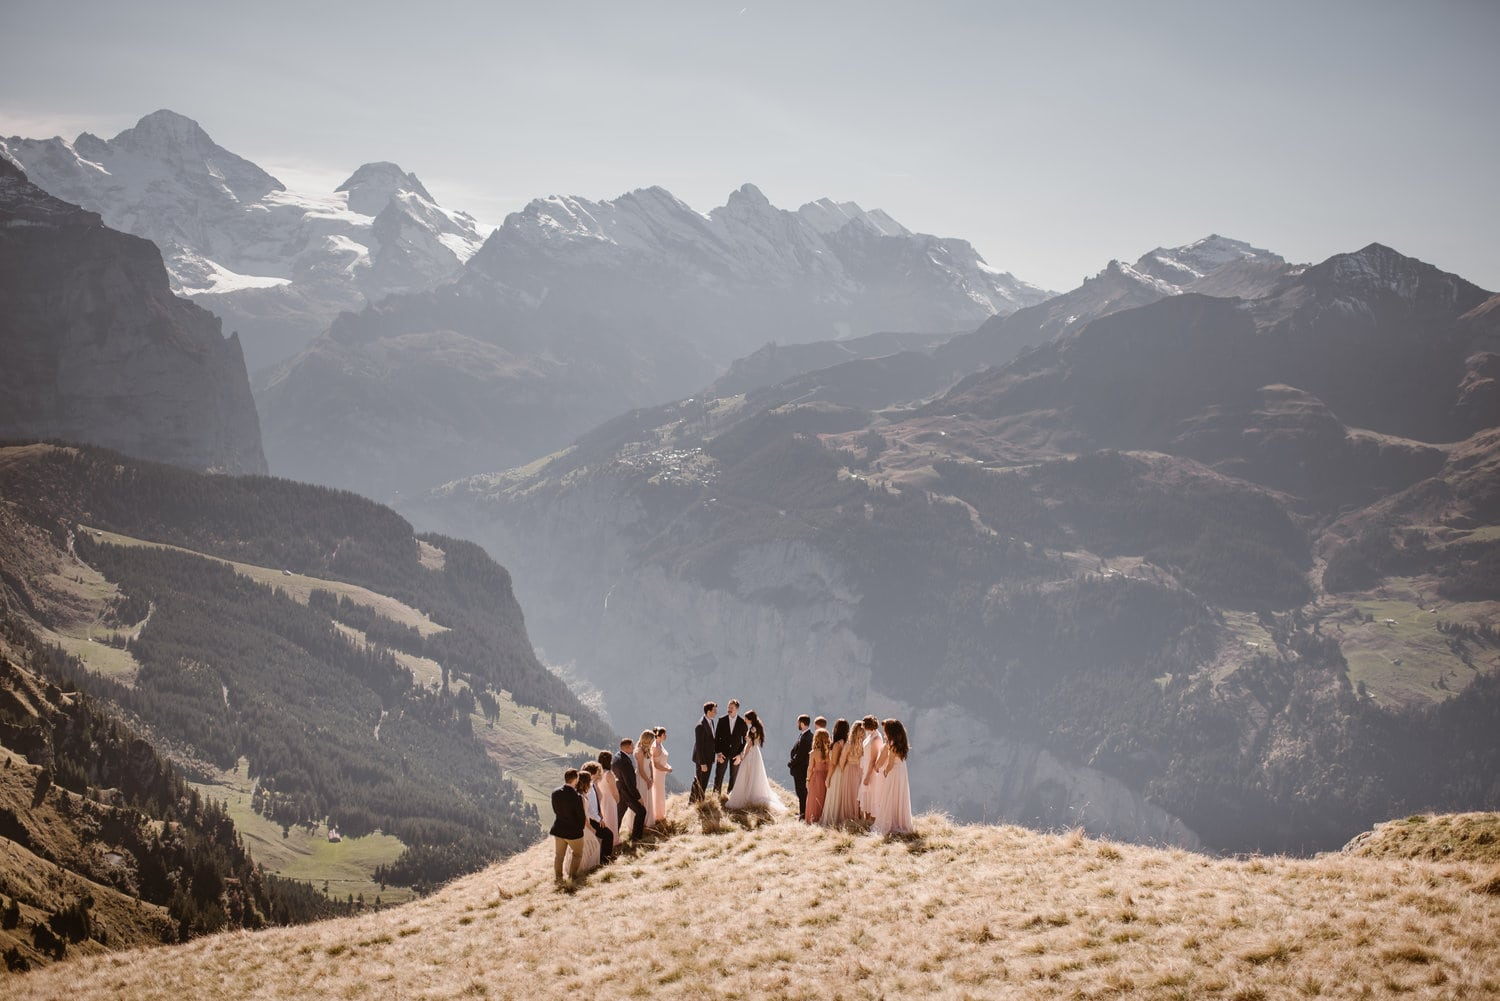 A bride and groom have an intimate ceremony in the mountains.